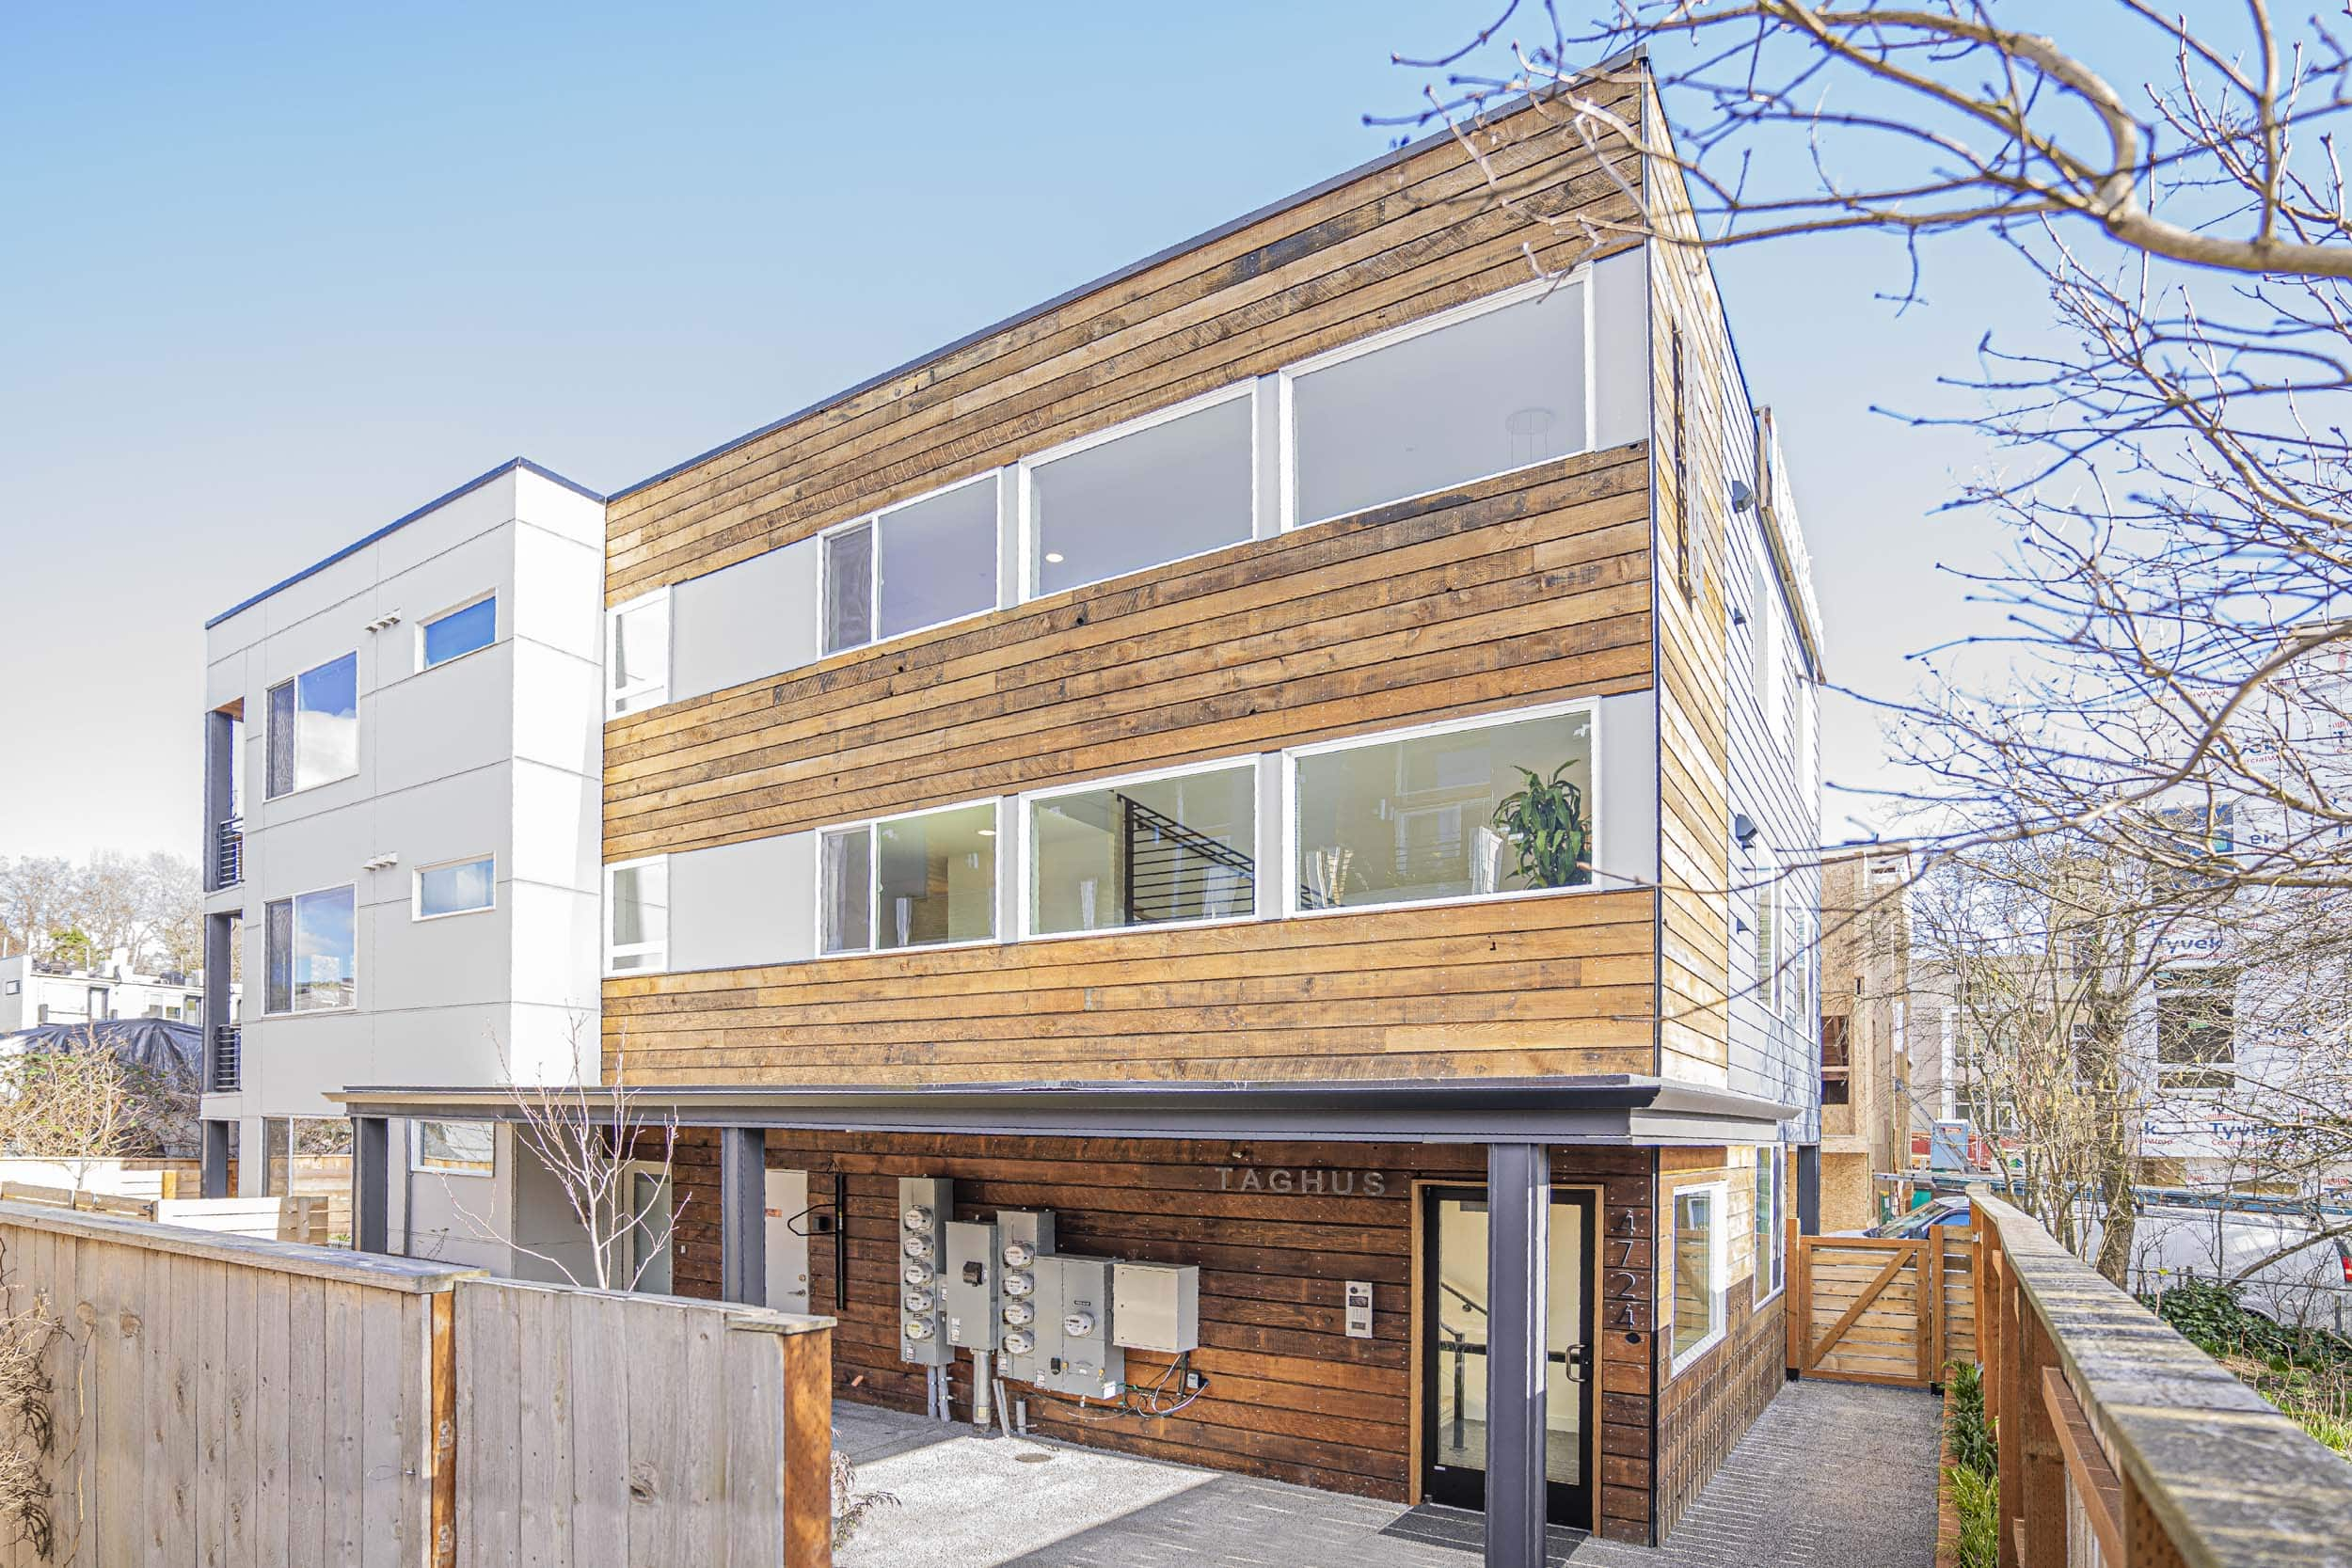 Custom design and construction of a nine unit apartment located at 4724 31st Ave S, Seattle, WA 98118